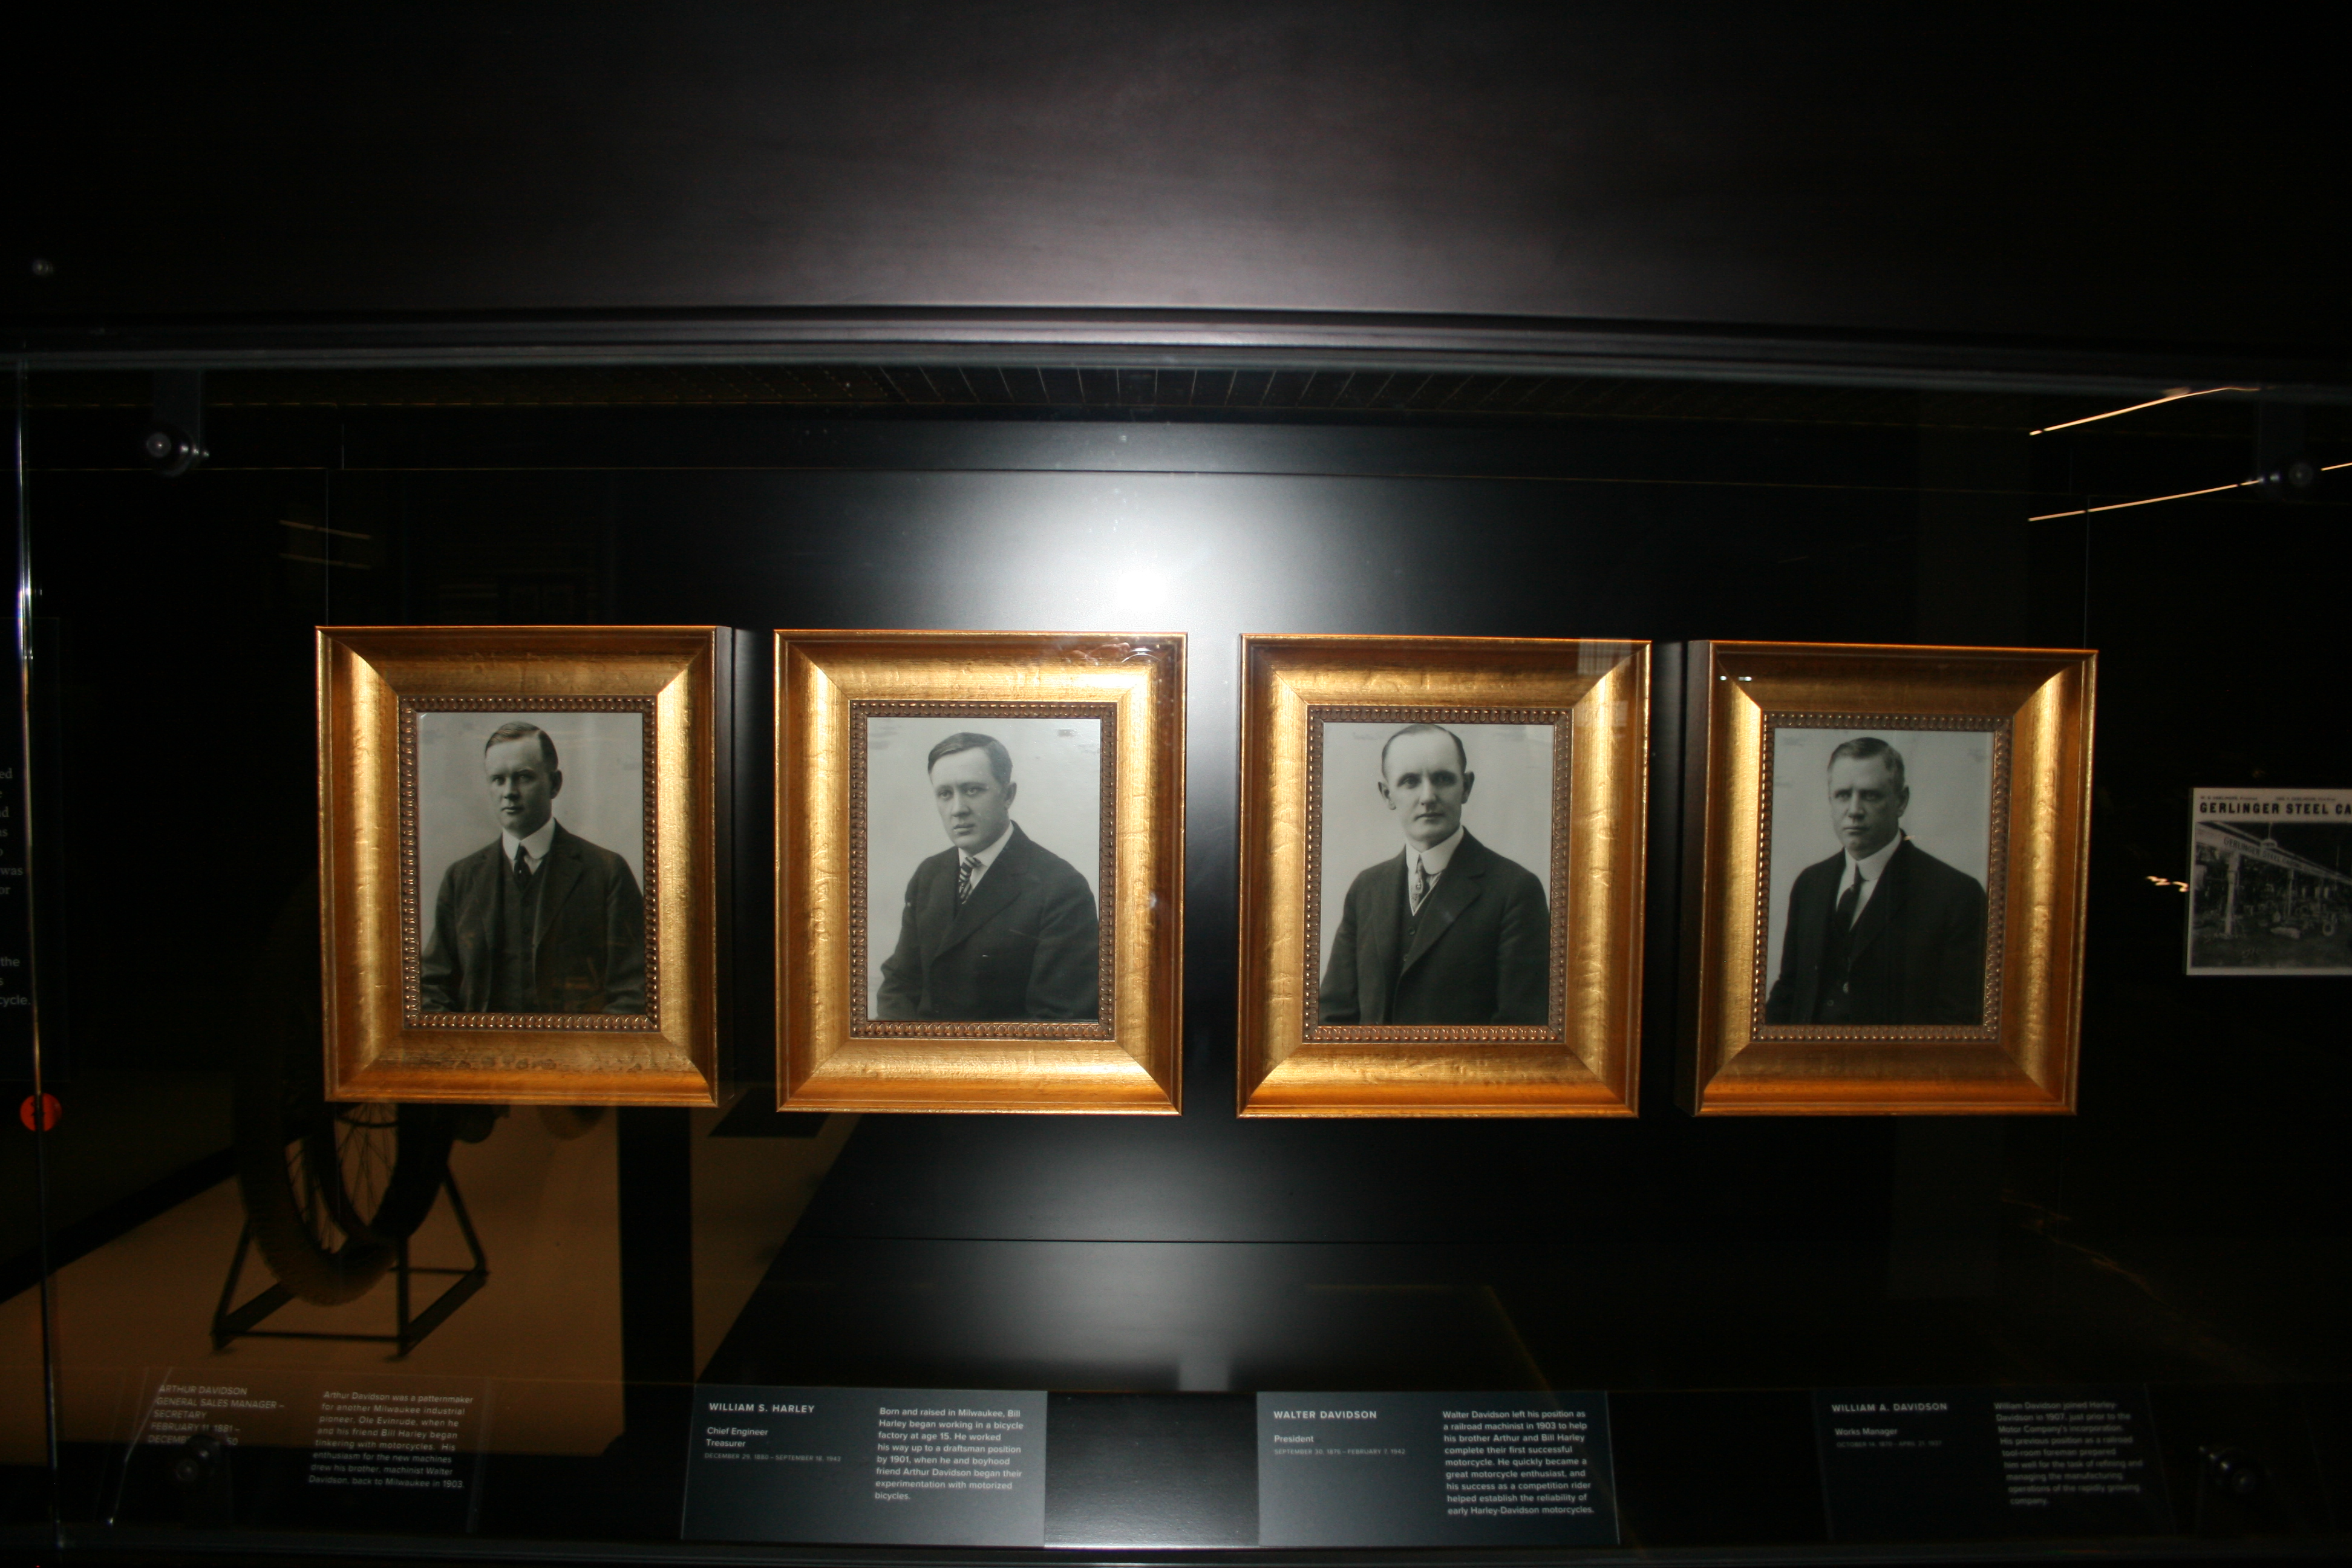 ARTHUR DAVIDSON,WILLIAM E. HARLEY, WALTER DAVIDSON, WILLIAM A. DAVIDSON,